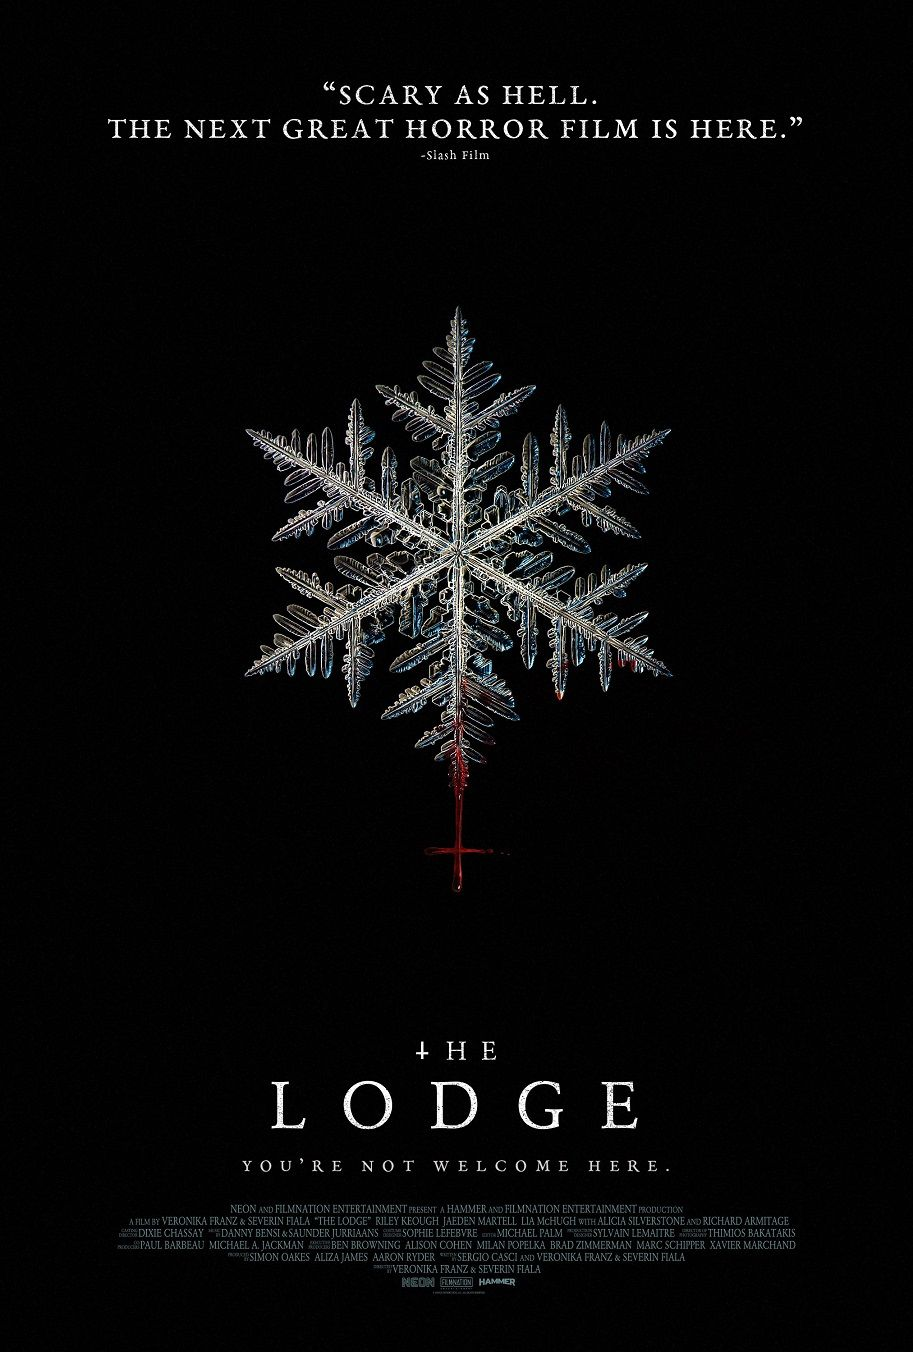 The Lodge Trailer Poster Tease This Year S Hereditary Peliculas Completas Ver Peliculas Completas Peliculas Completas Gratis